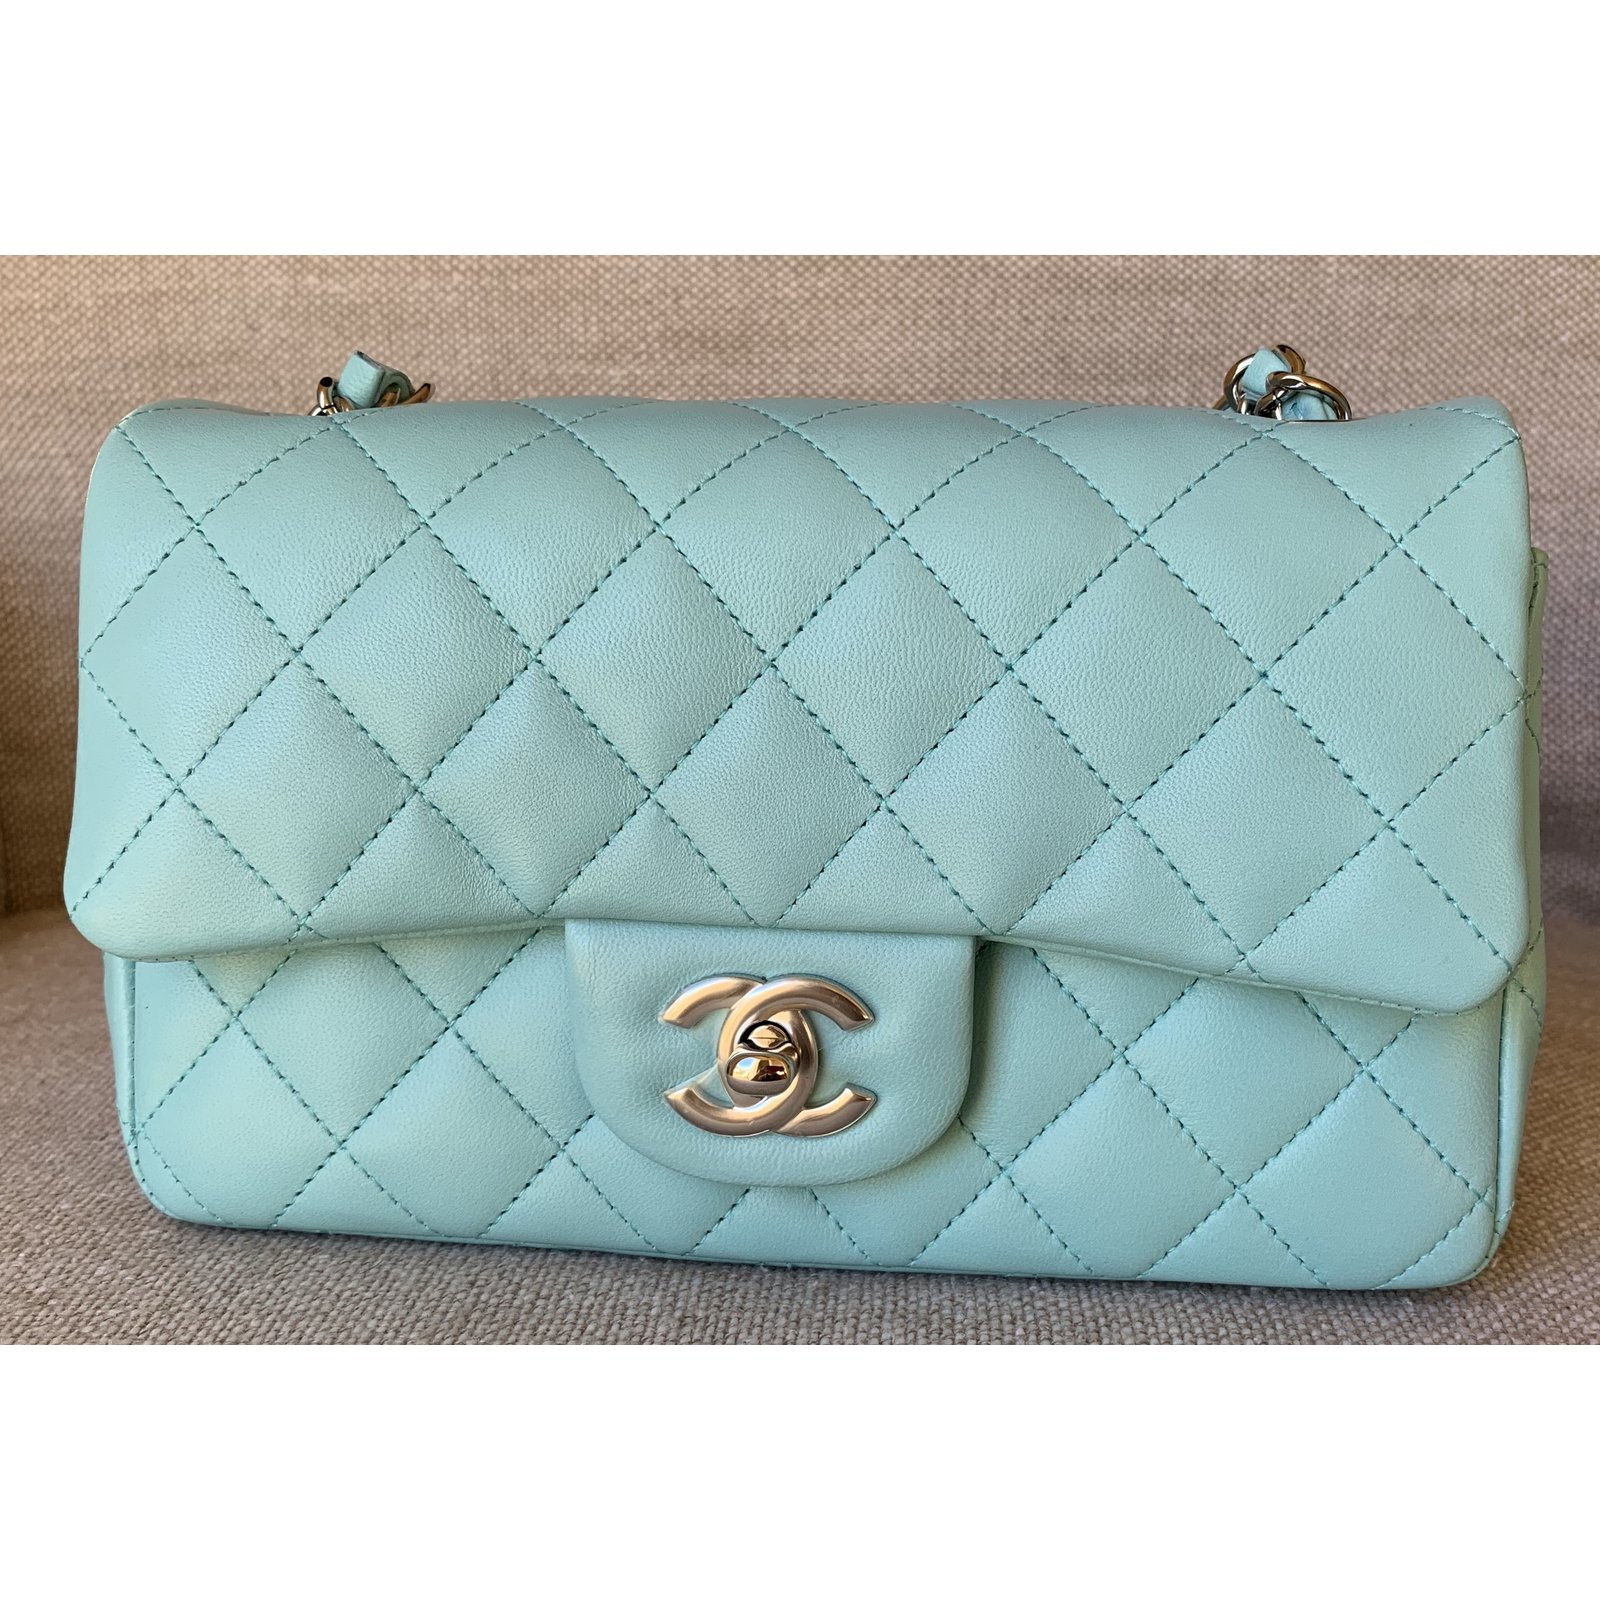 5771ce0bfd43 Chanel Light Blue Classic Quilted Lambskin Mini Flap with Silver Chain  Handbags Leather Light blue ref.92355 - Joli Closet